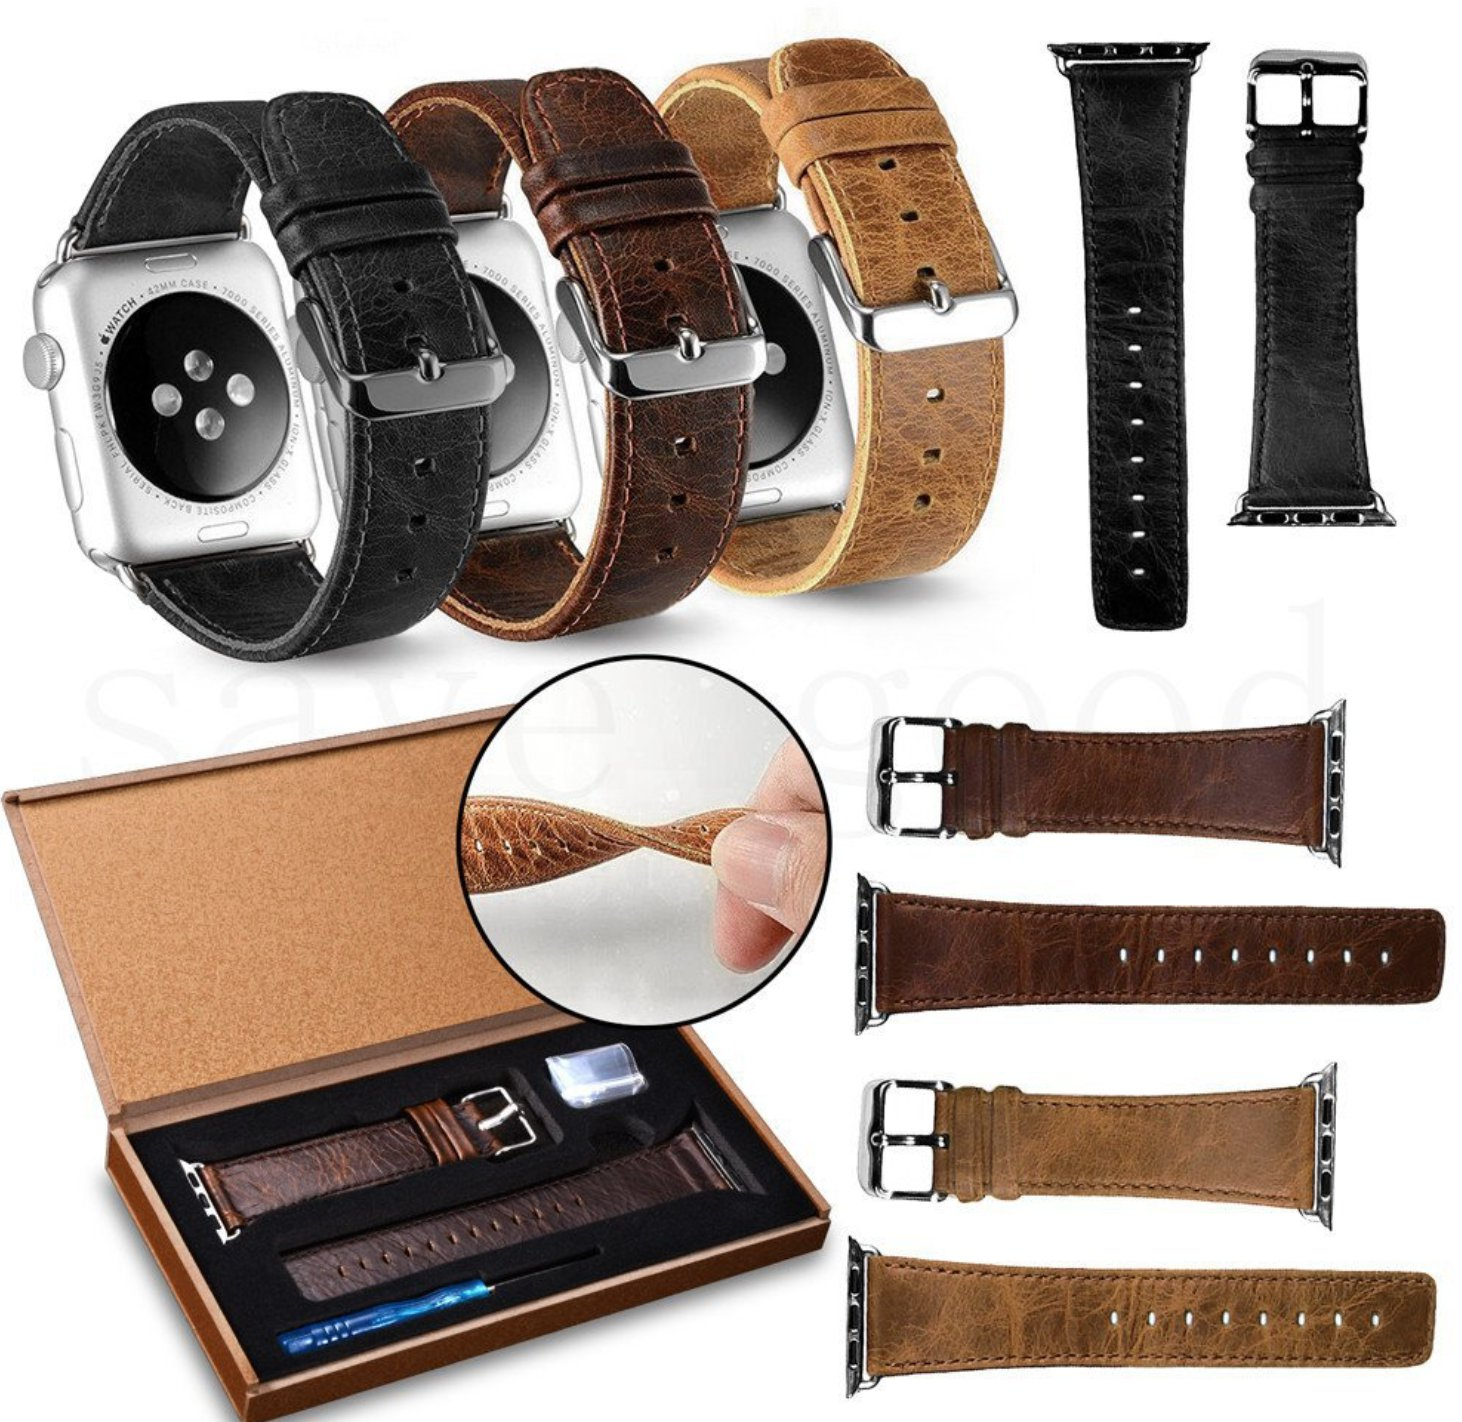 Apple Watch Band Black Brown Leather Strap Bracelet Wristwatch iWatch Watch Band